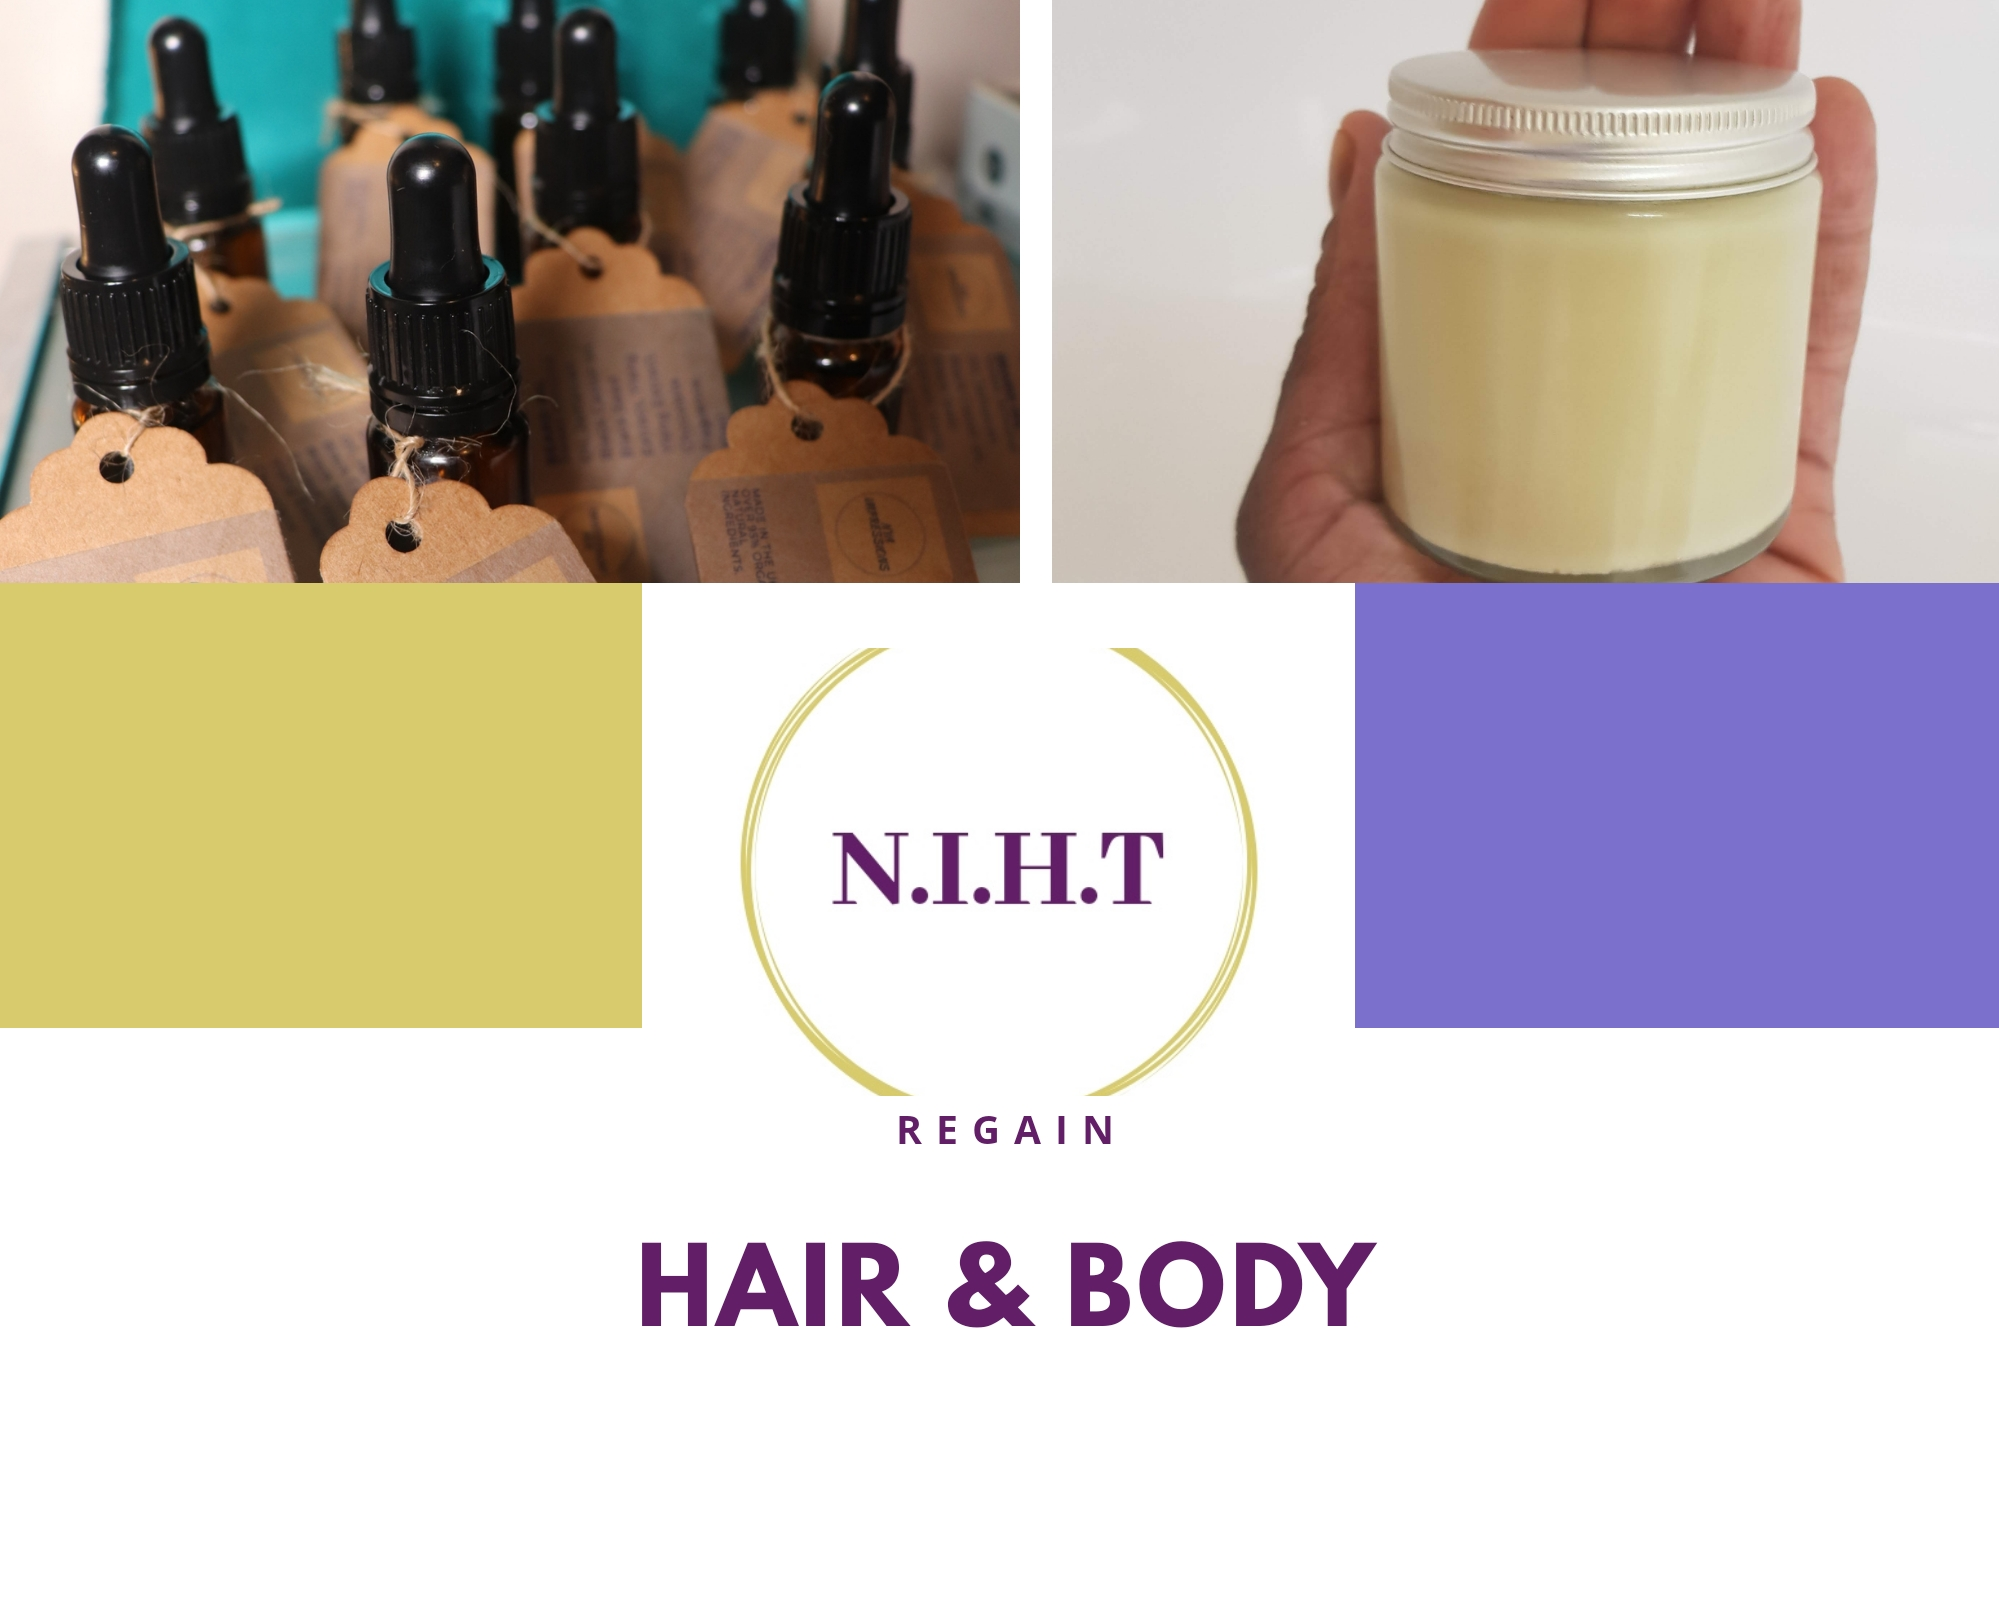 Hair & body natural products